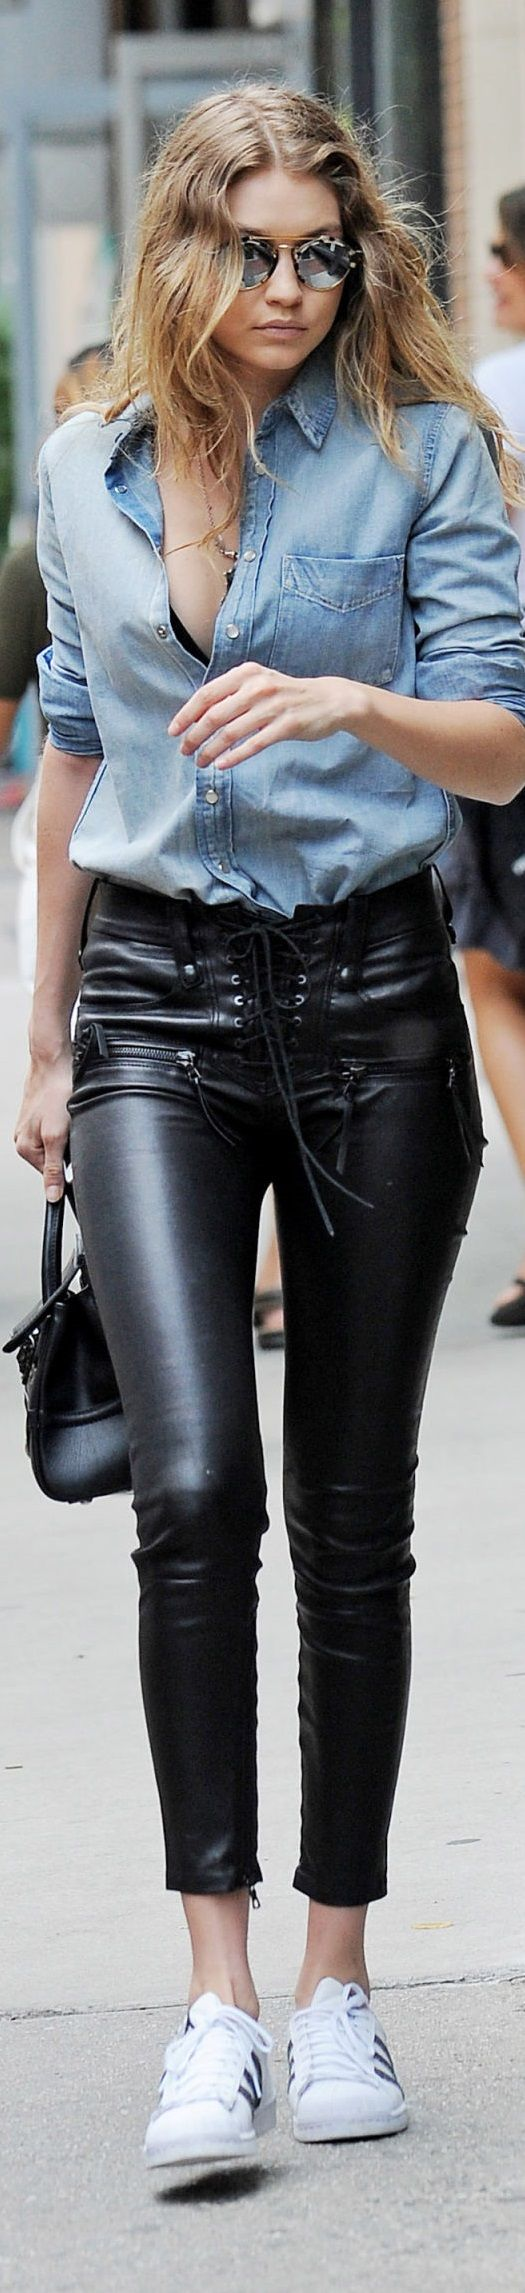 Gigi Hadid denim shirt and leather pants